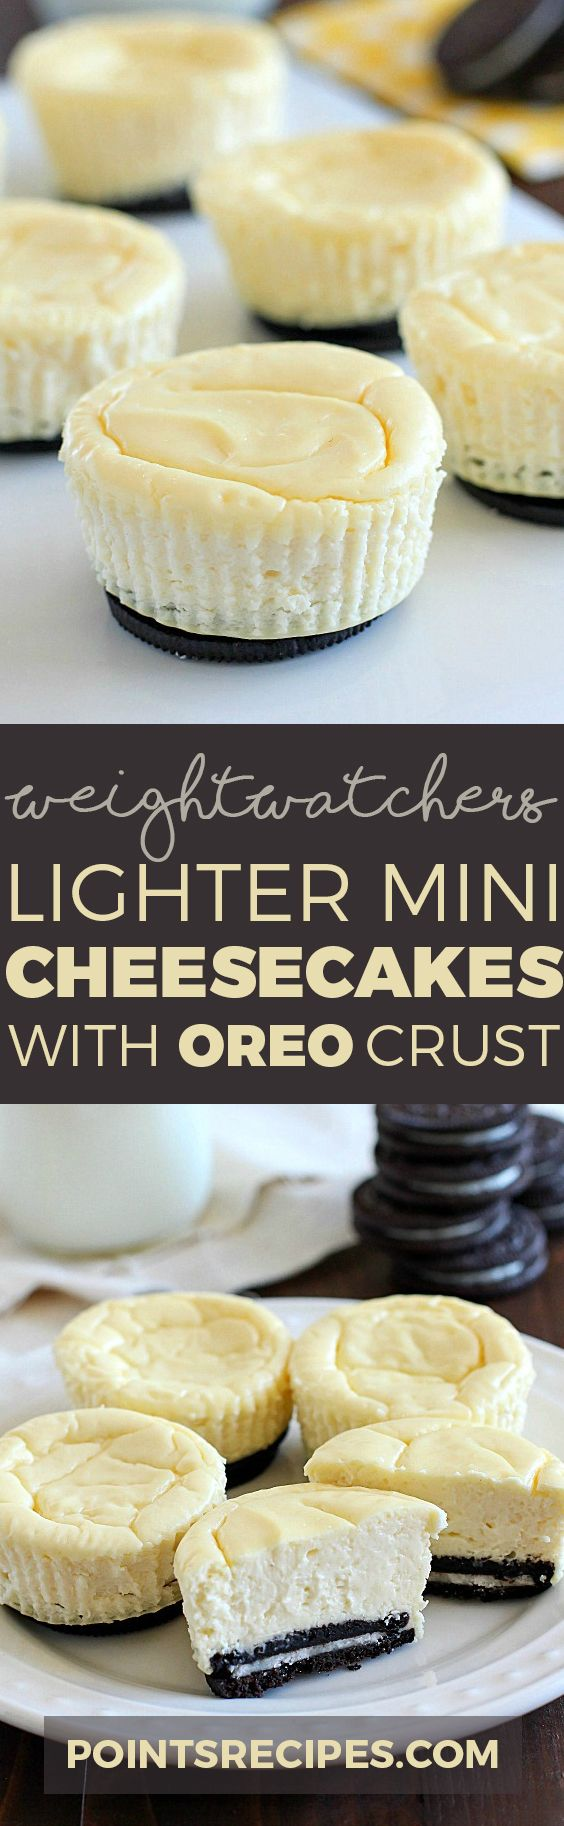 Lighter Mini Cheesecakes with Oreo Crust (Weight Watchers SmartPoints)